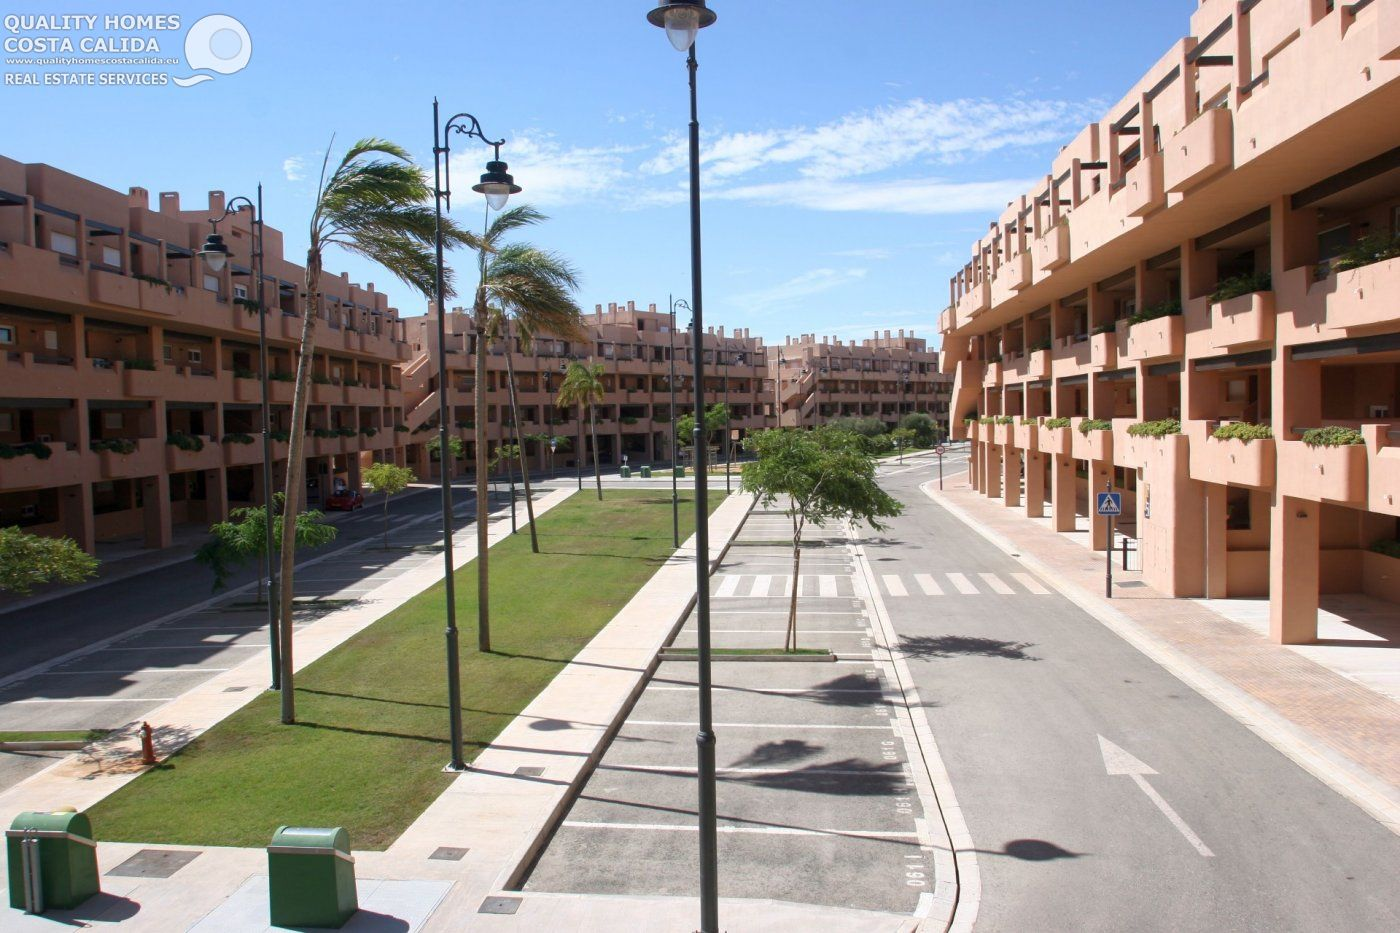 Gallery Image 31 of NEW BANK RELEASE - New 2 Bedroom Apartments at La Isla del Condado For Sale from €53,100